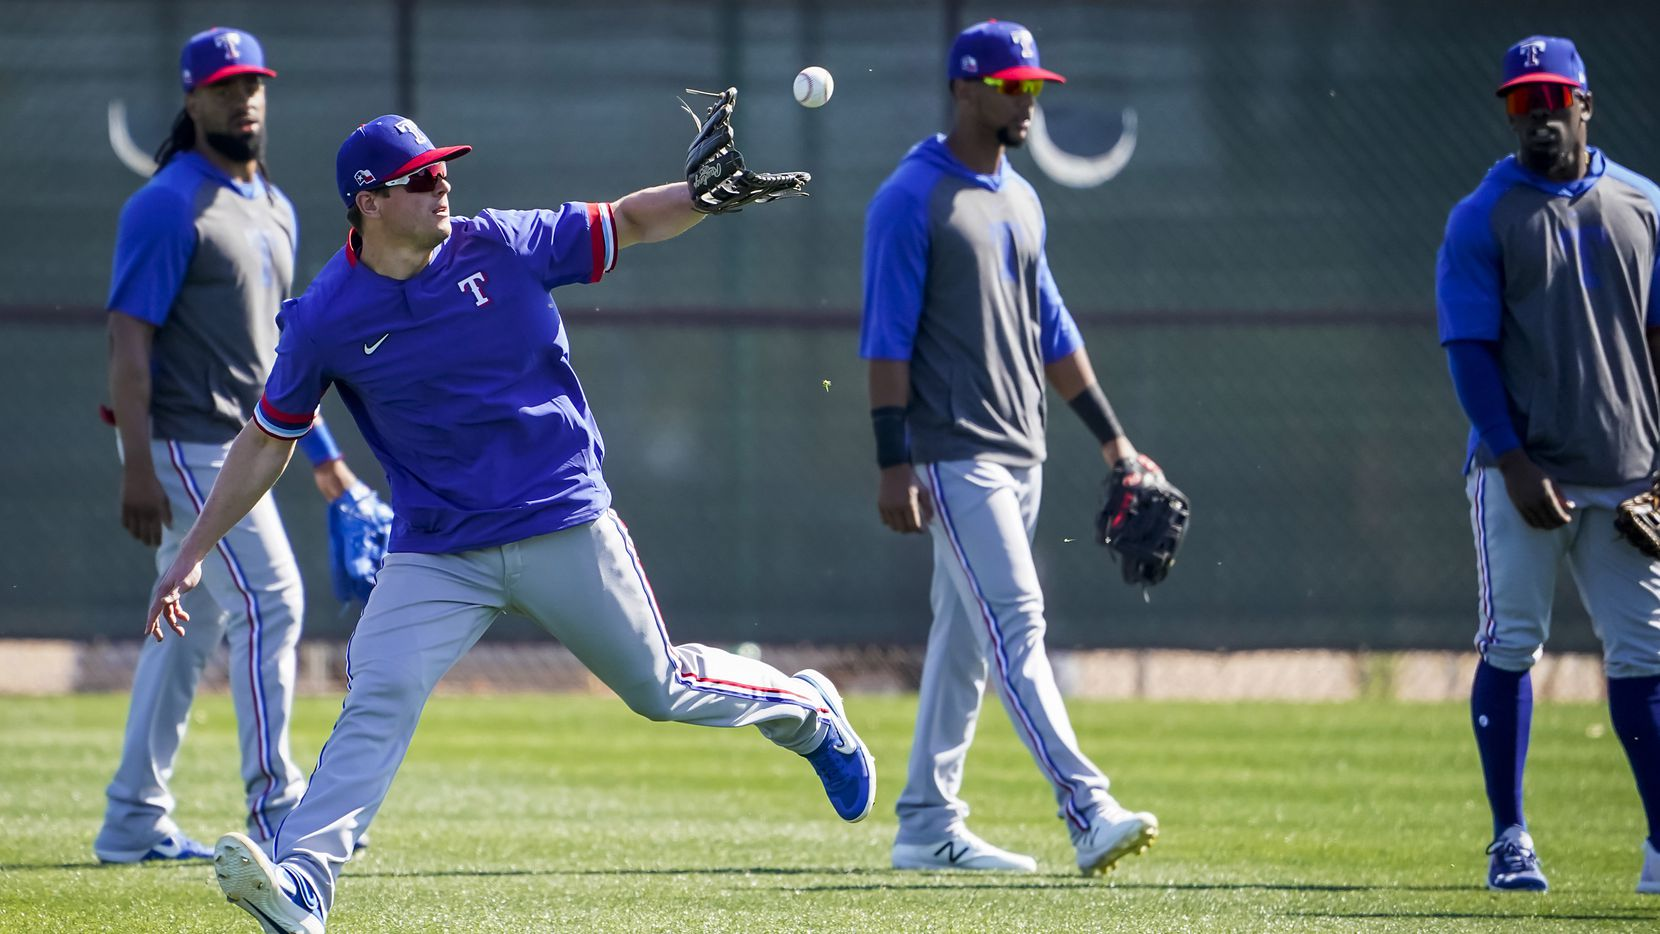 Texas Rangers infielder Nick Solak makes a catch while participating in a fielding drill during a spring training workout at the team's training facility on Thursday, Feb. 20, 2020, in Surprise, Ariz.